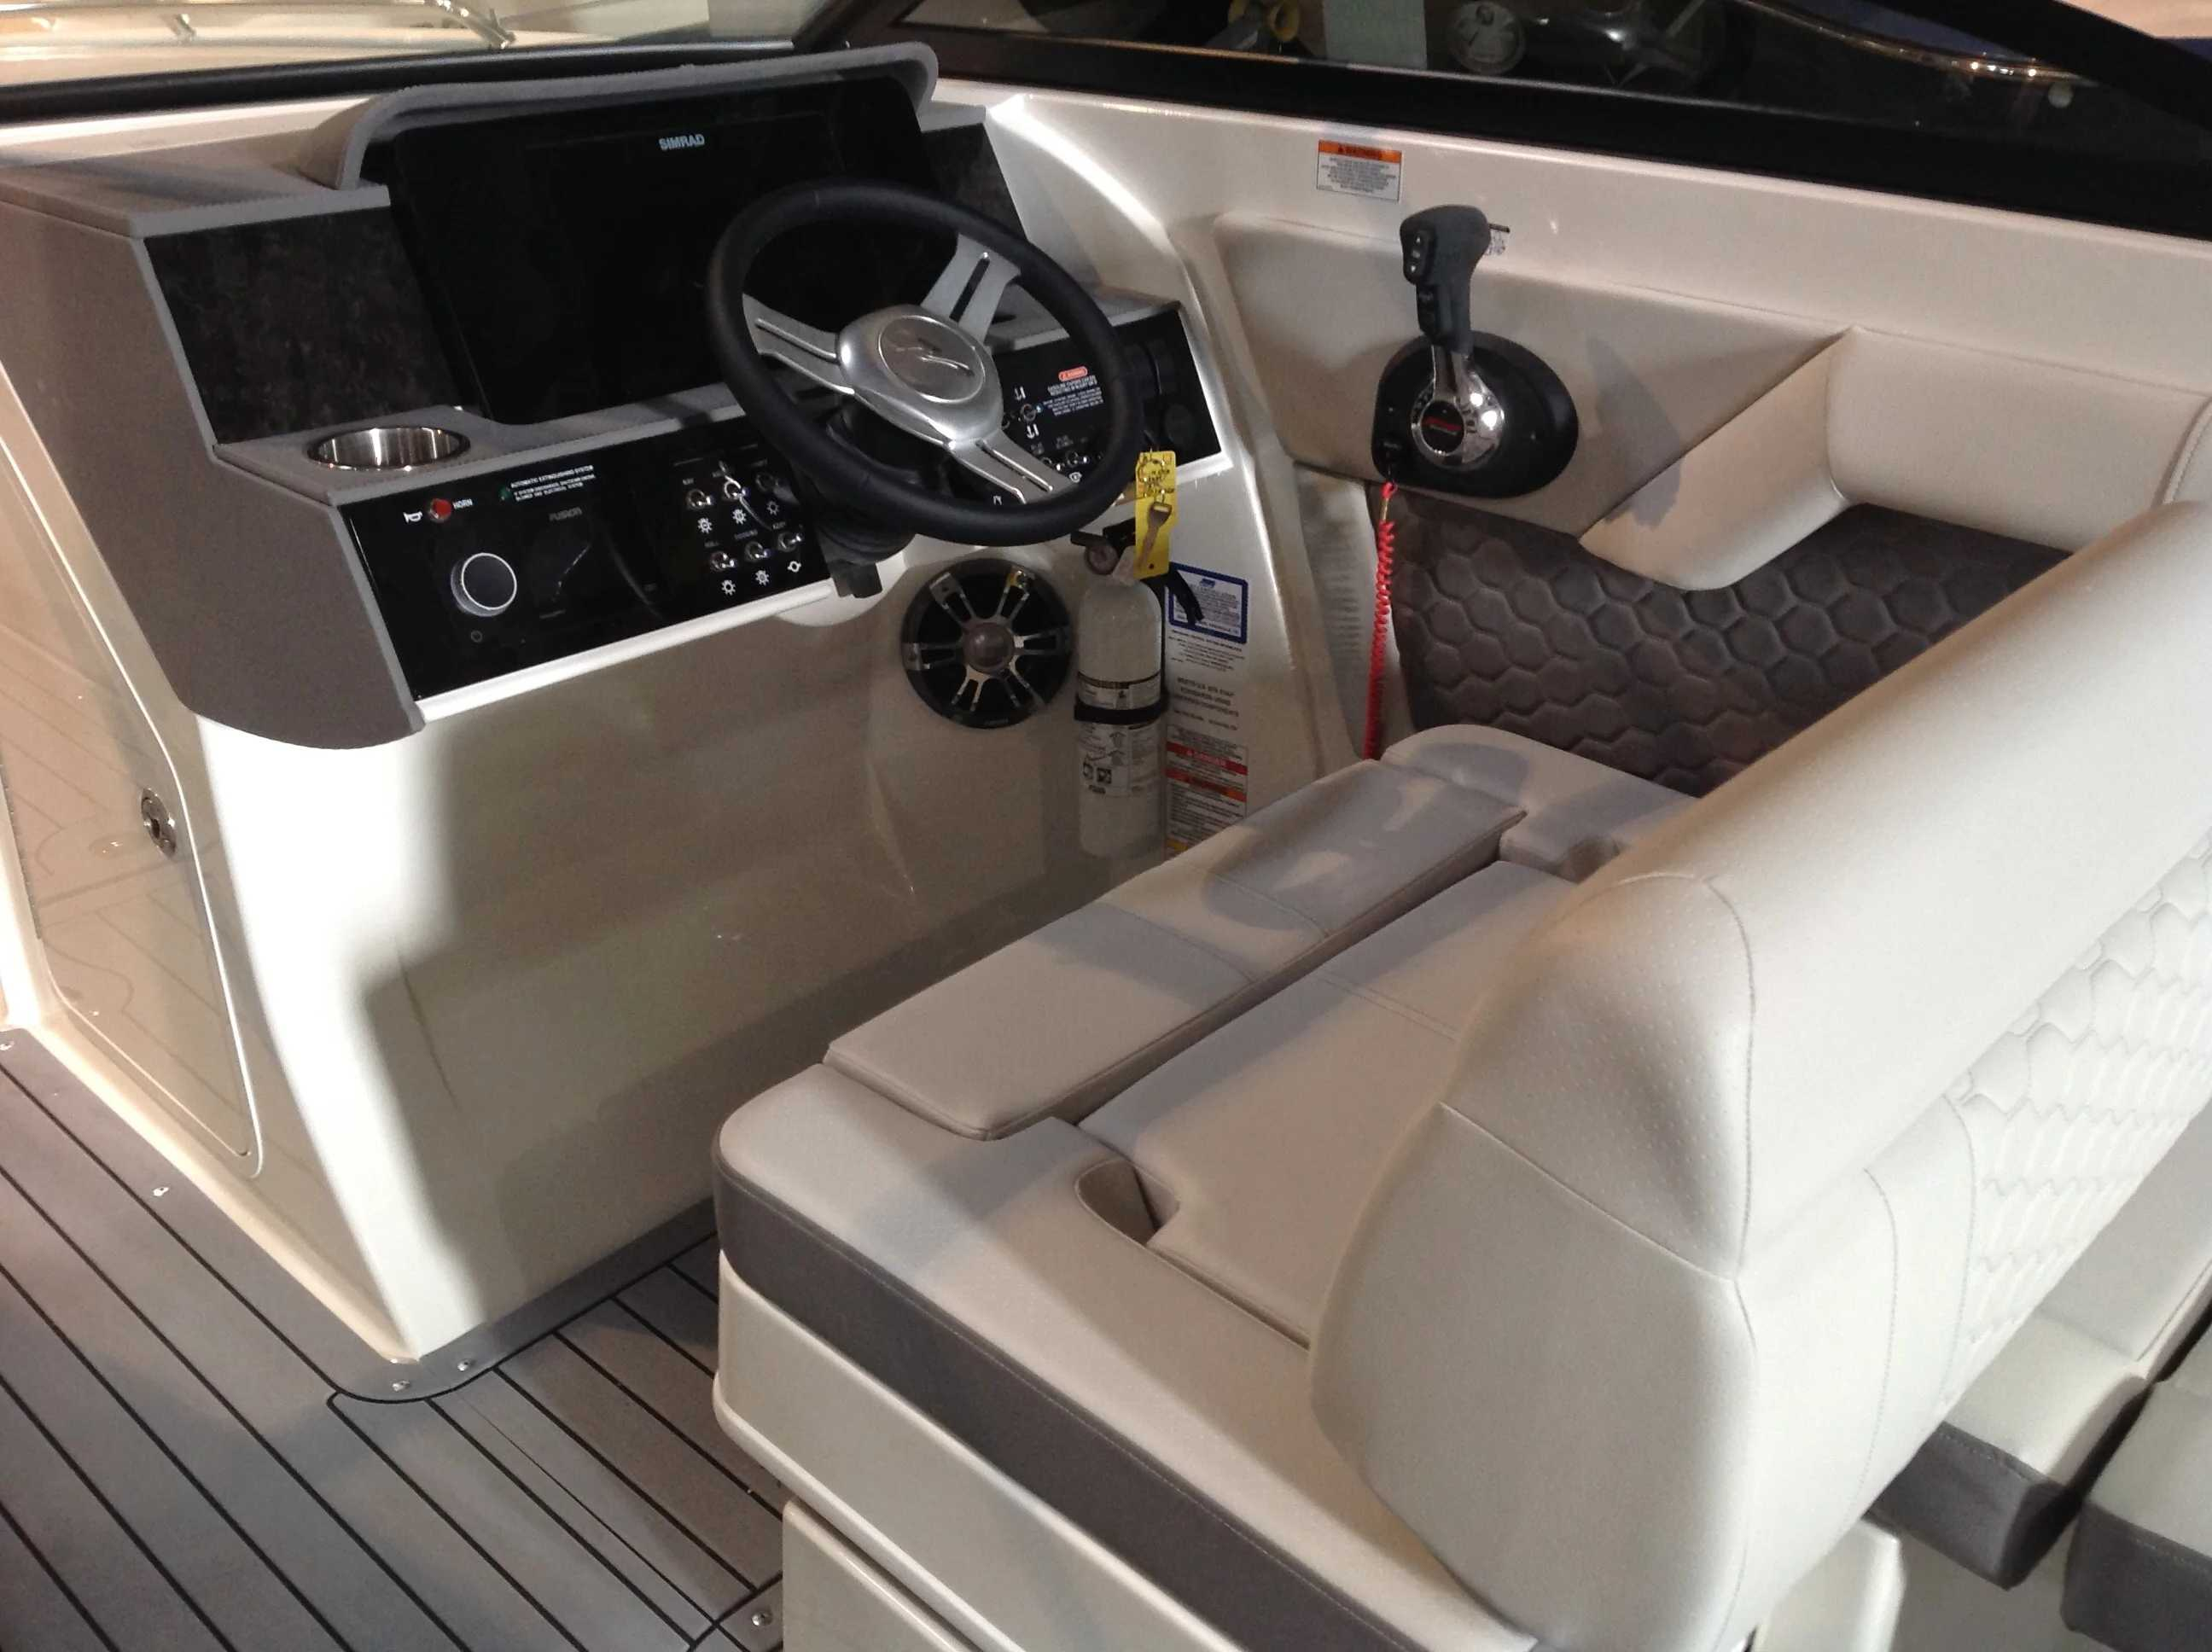 2021 Sea Ray boat for sale, model of the boat is 270 SDX & Image # 11 of 21